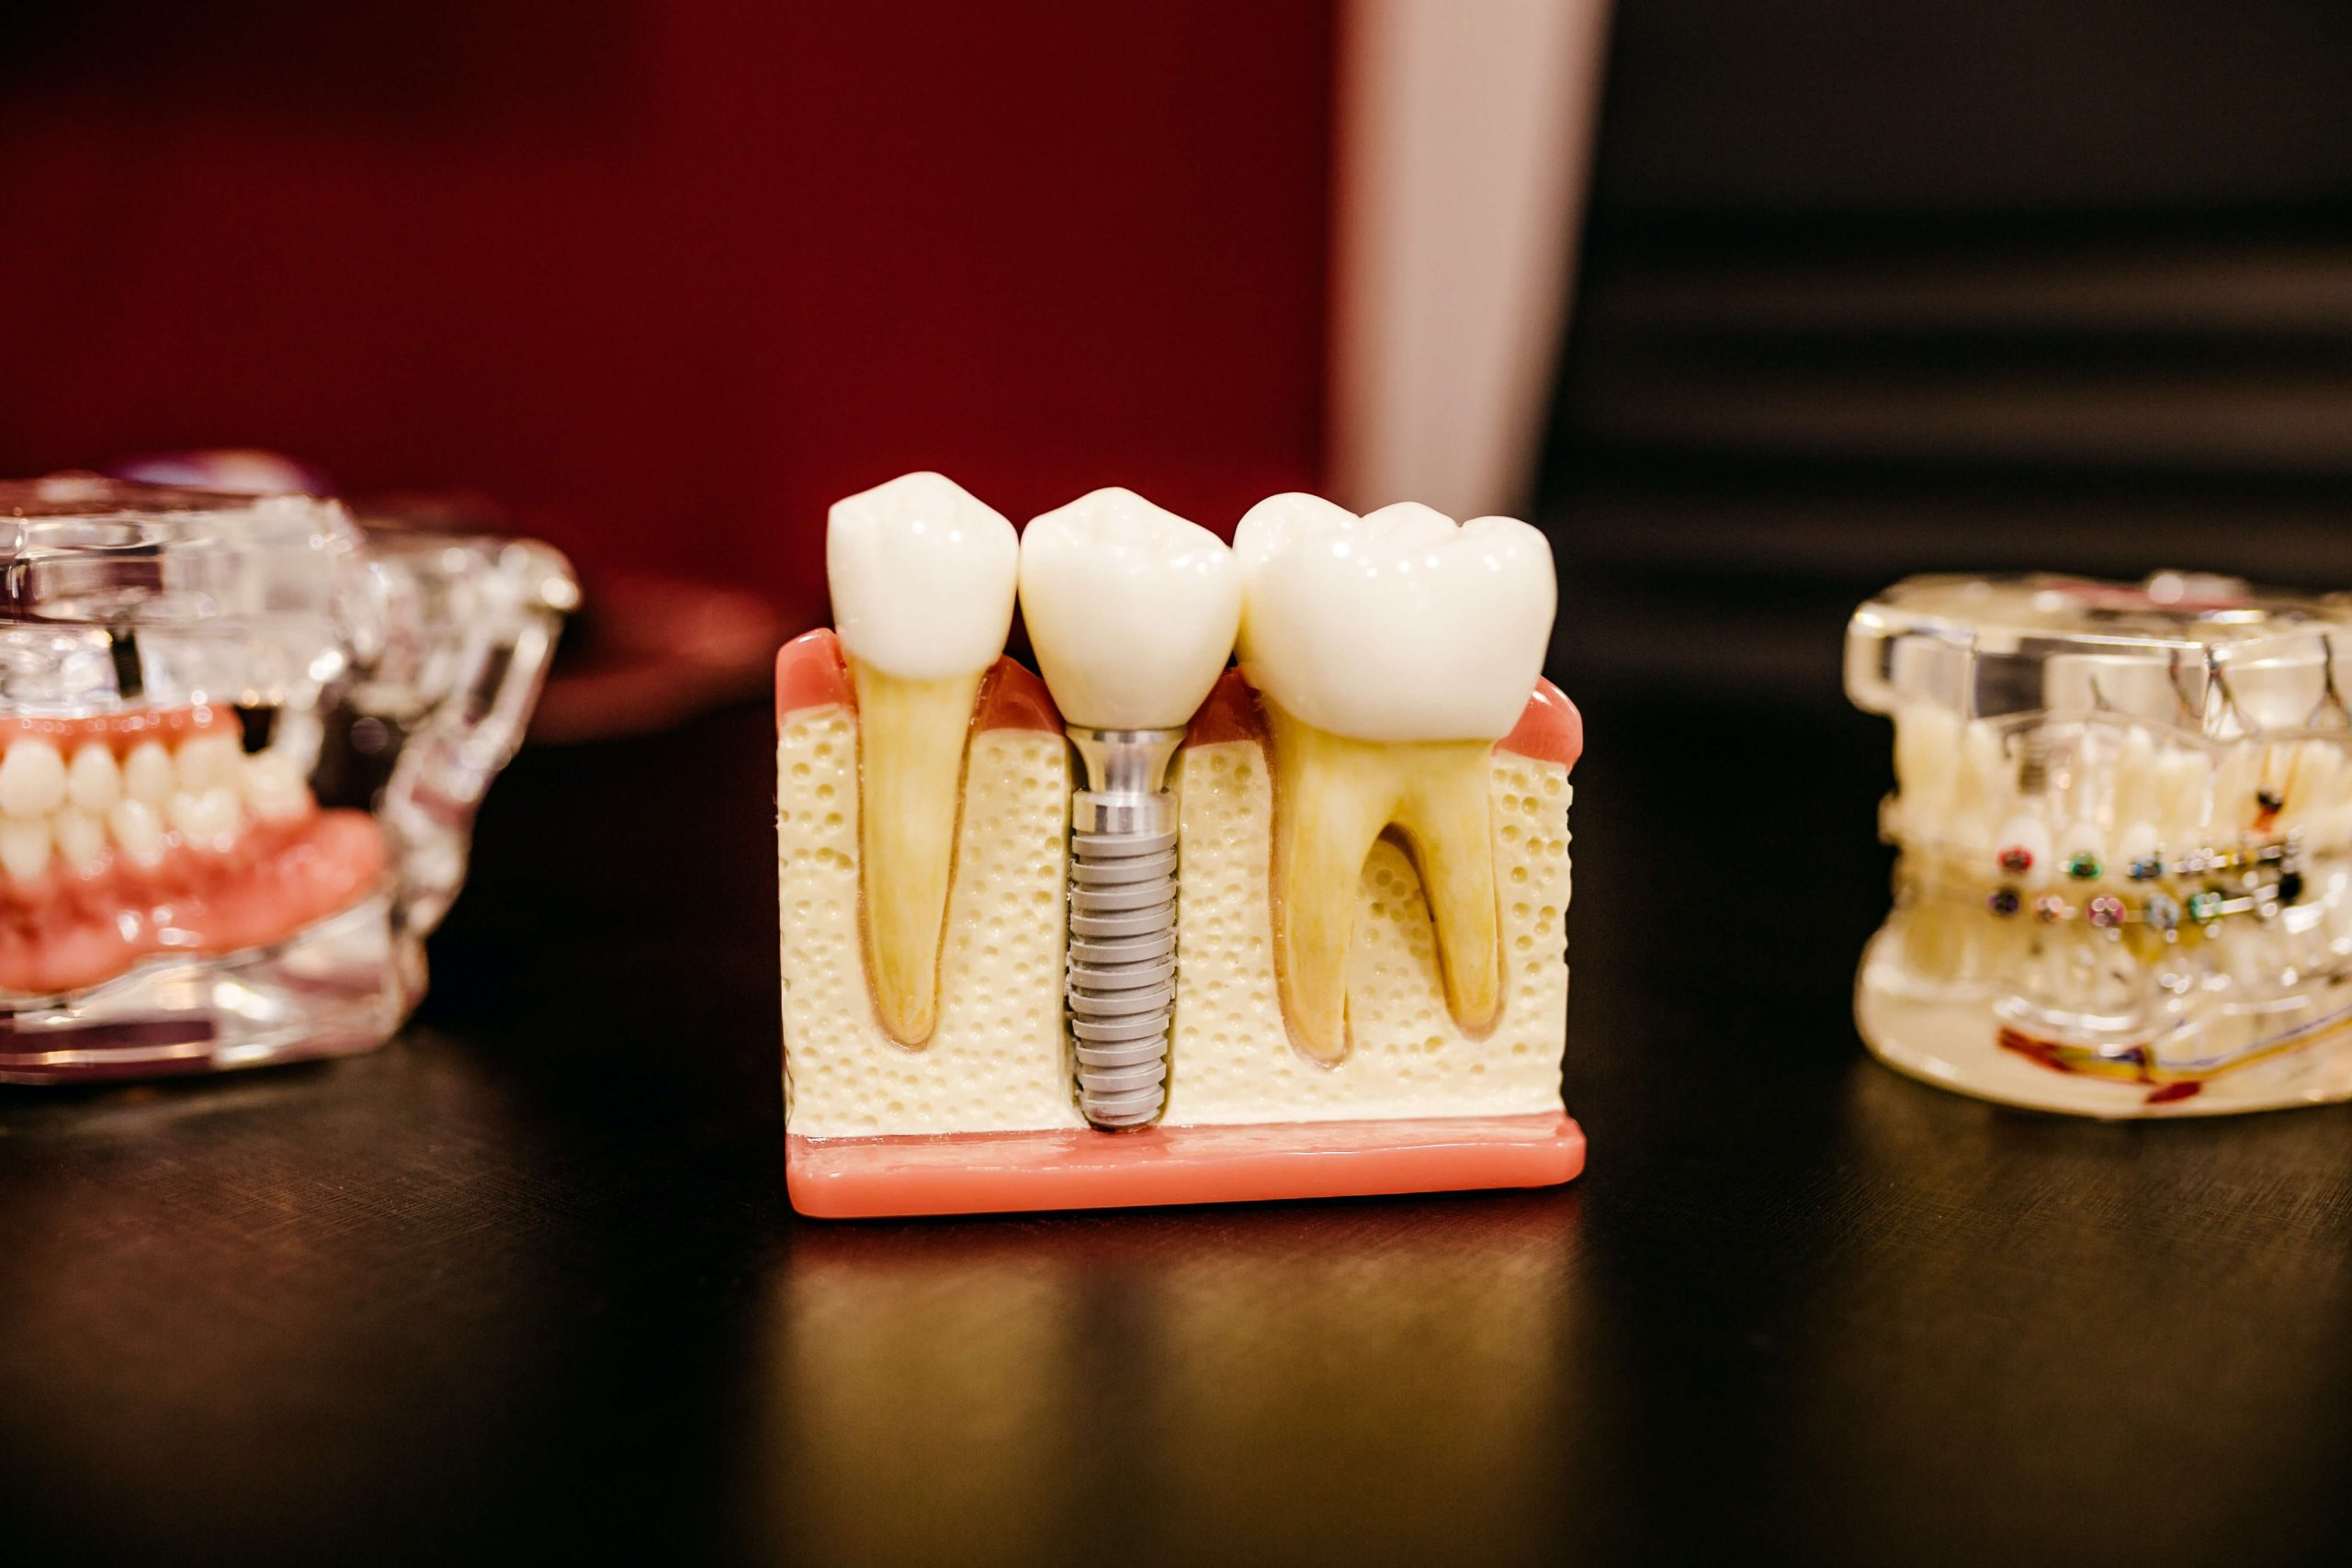 Things You Need To Know Before Choosing Dental Implants